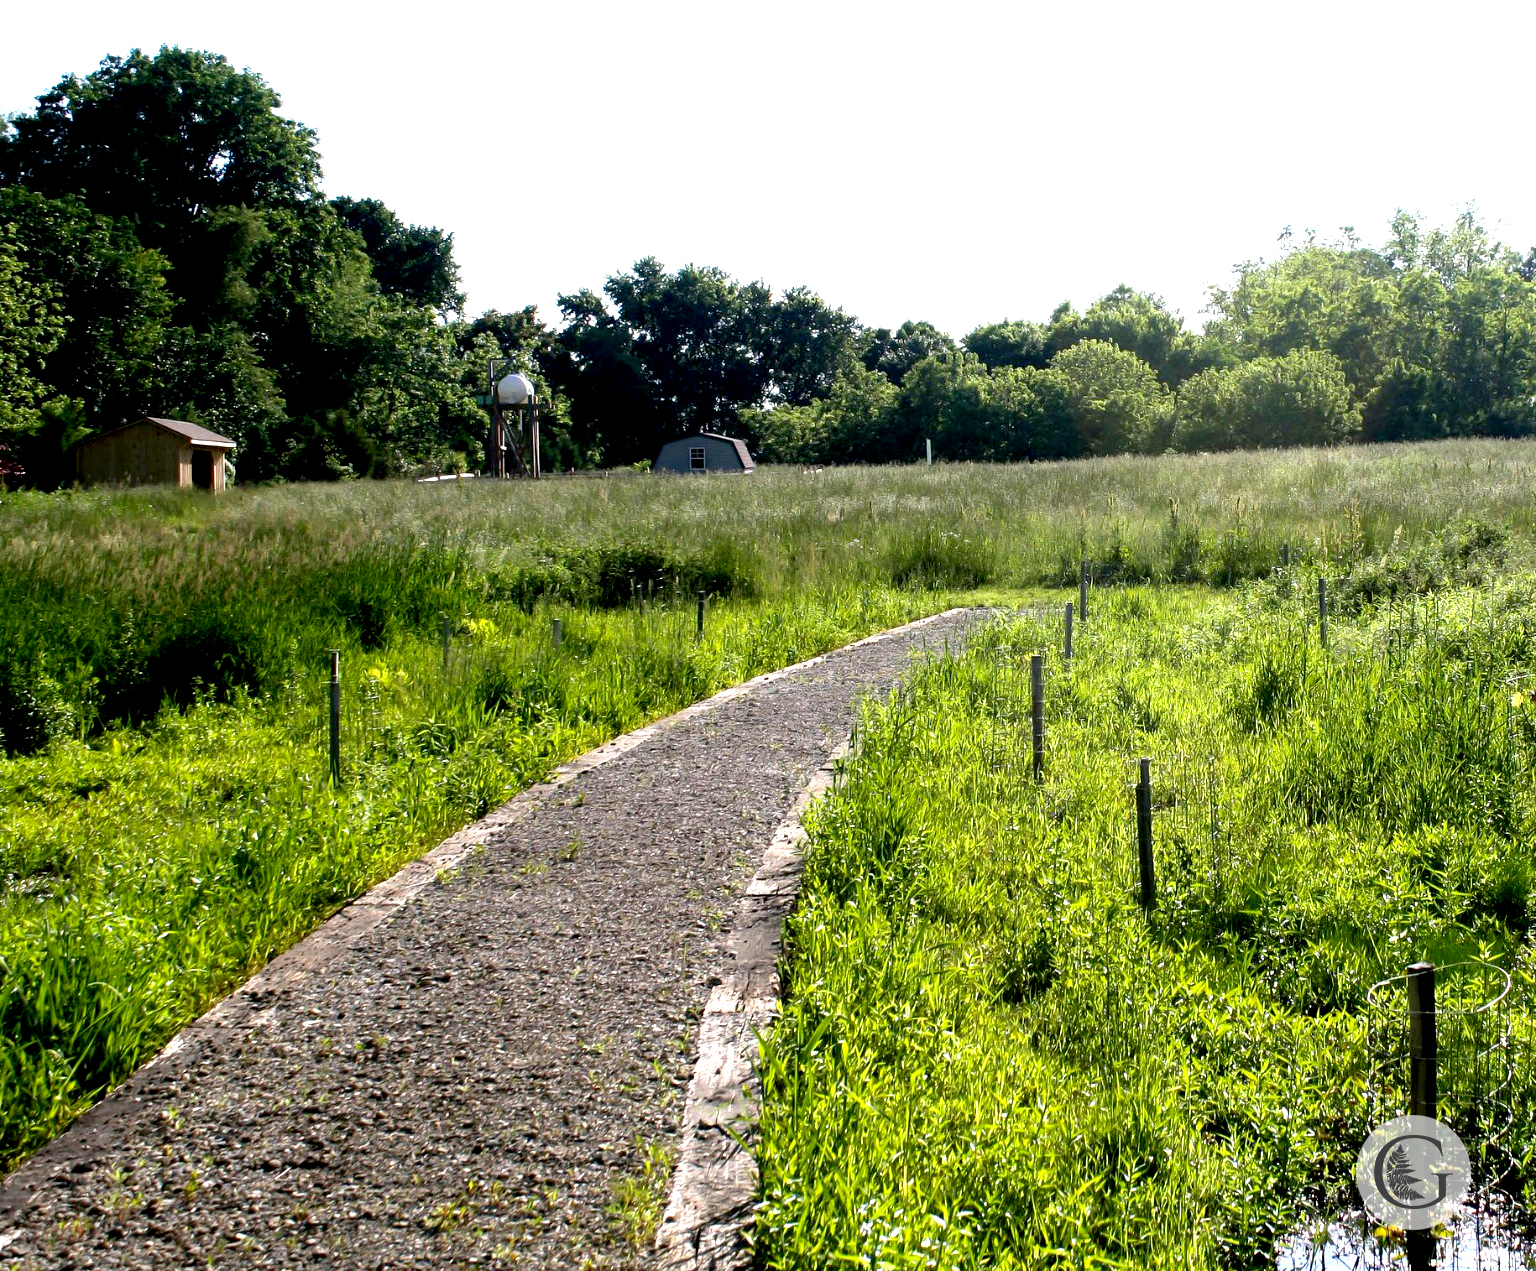 We partner with local trail systems to provide maintenance and create new trails. -